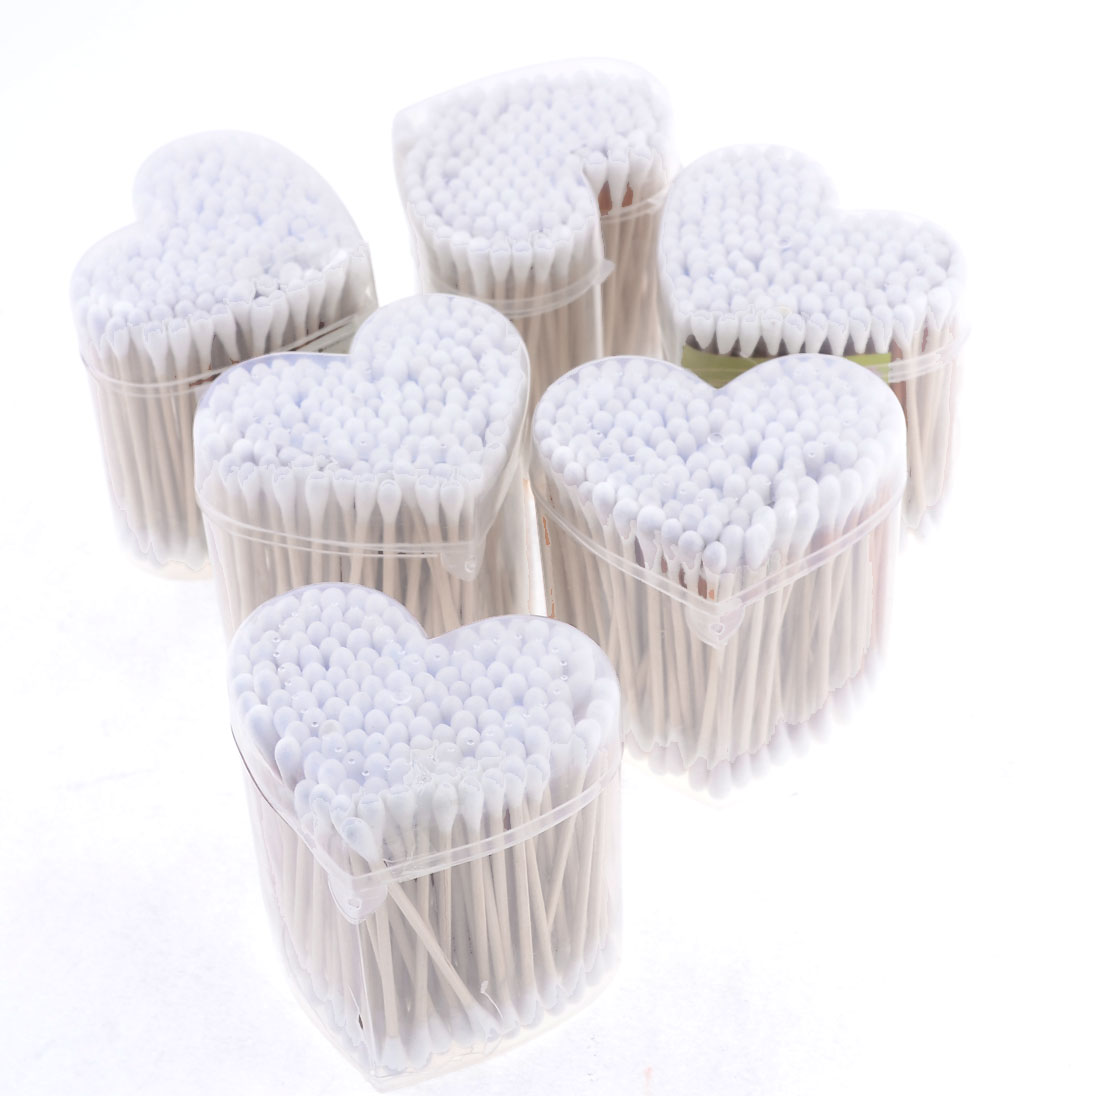 6 Heart Boxes 900 Pcs Wood Rod White Double Ended Cotton Buds